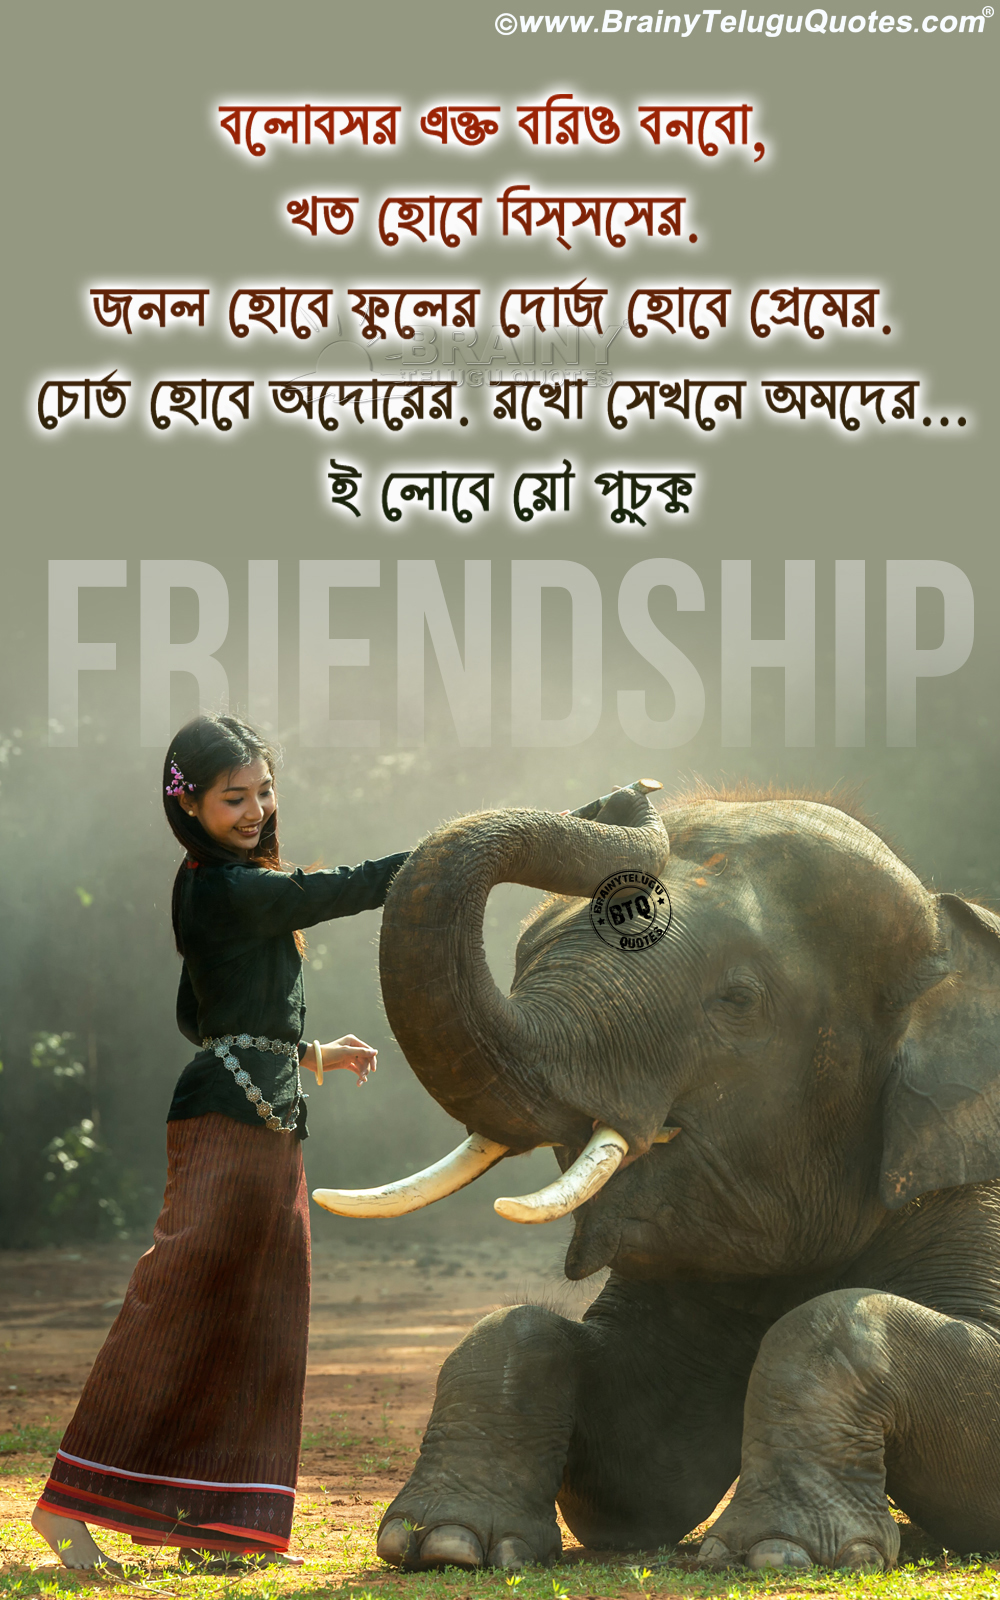 Bengali Heart Touching Friendship Quotes For Android Mobile